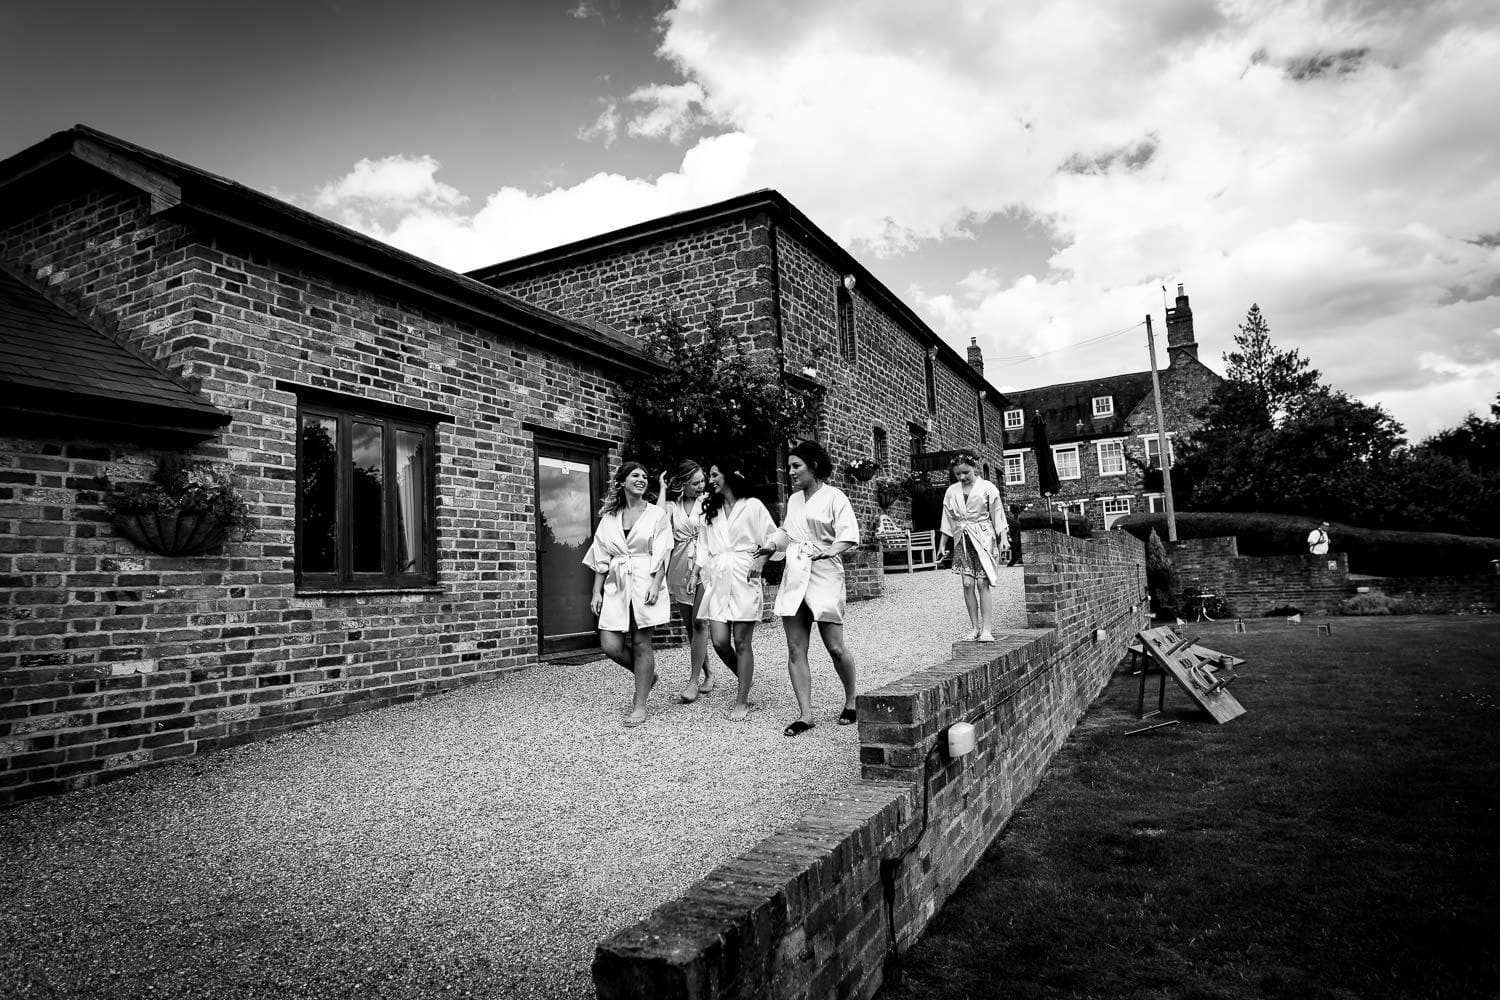 The Granary at Fawsley Wedding venue set within beautiful warwickshire countryside